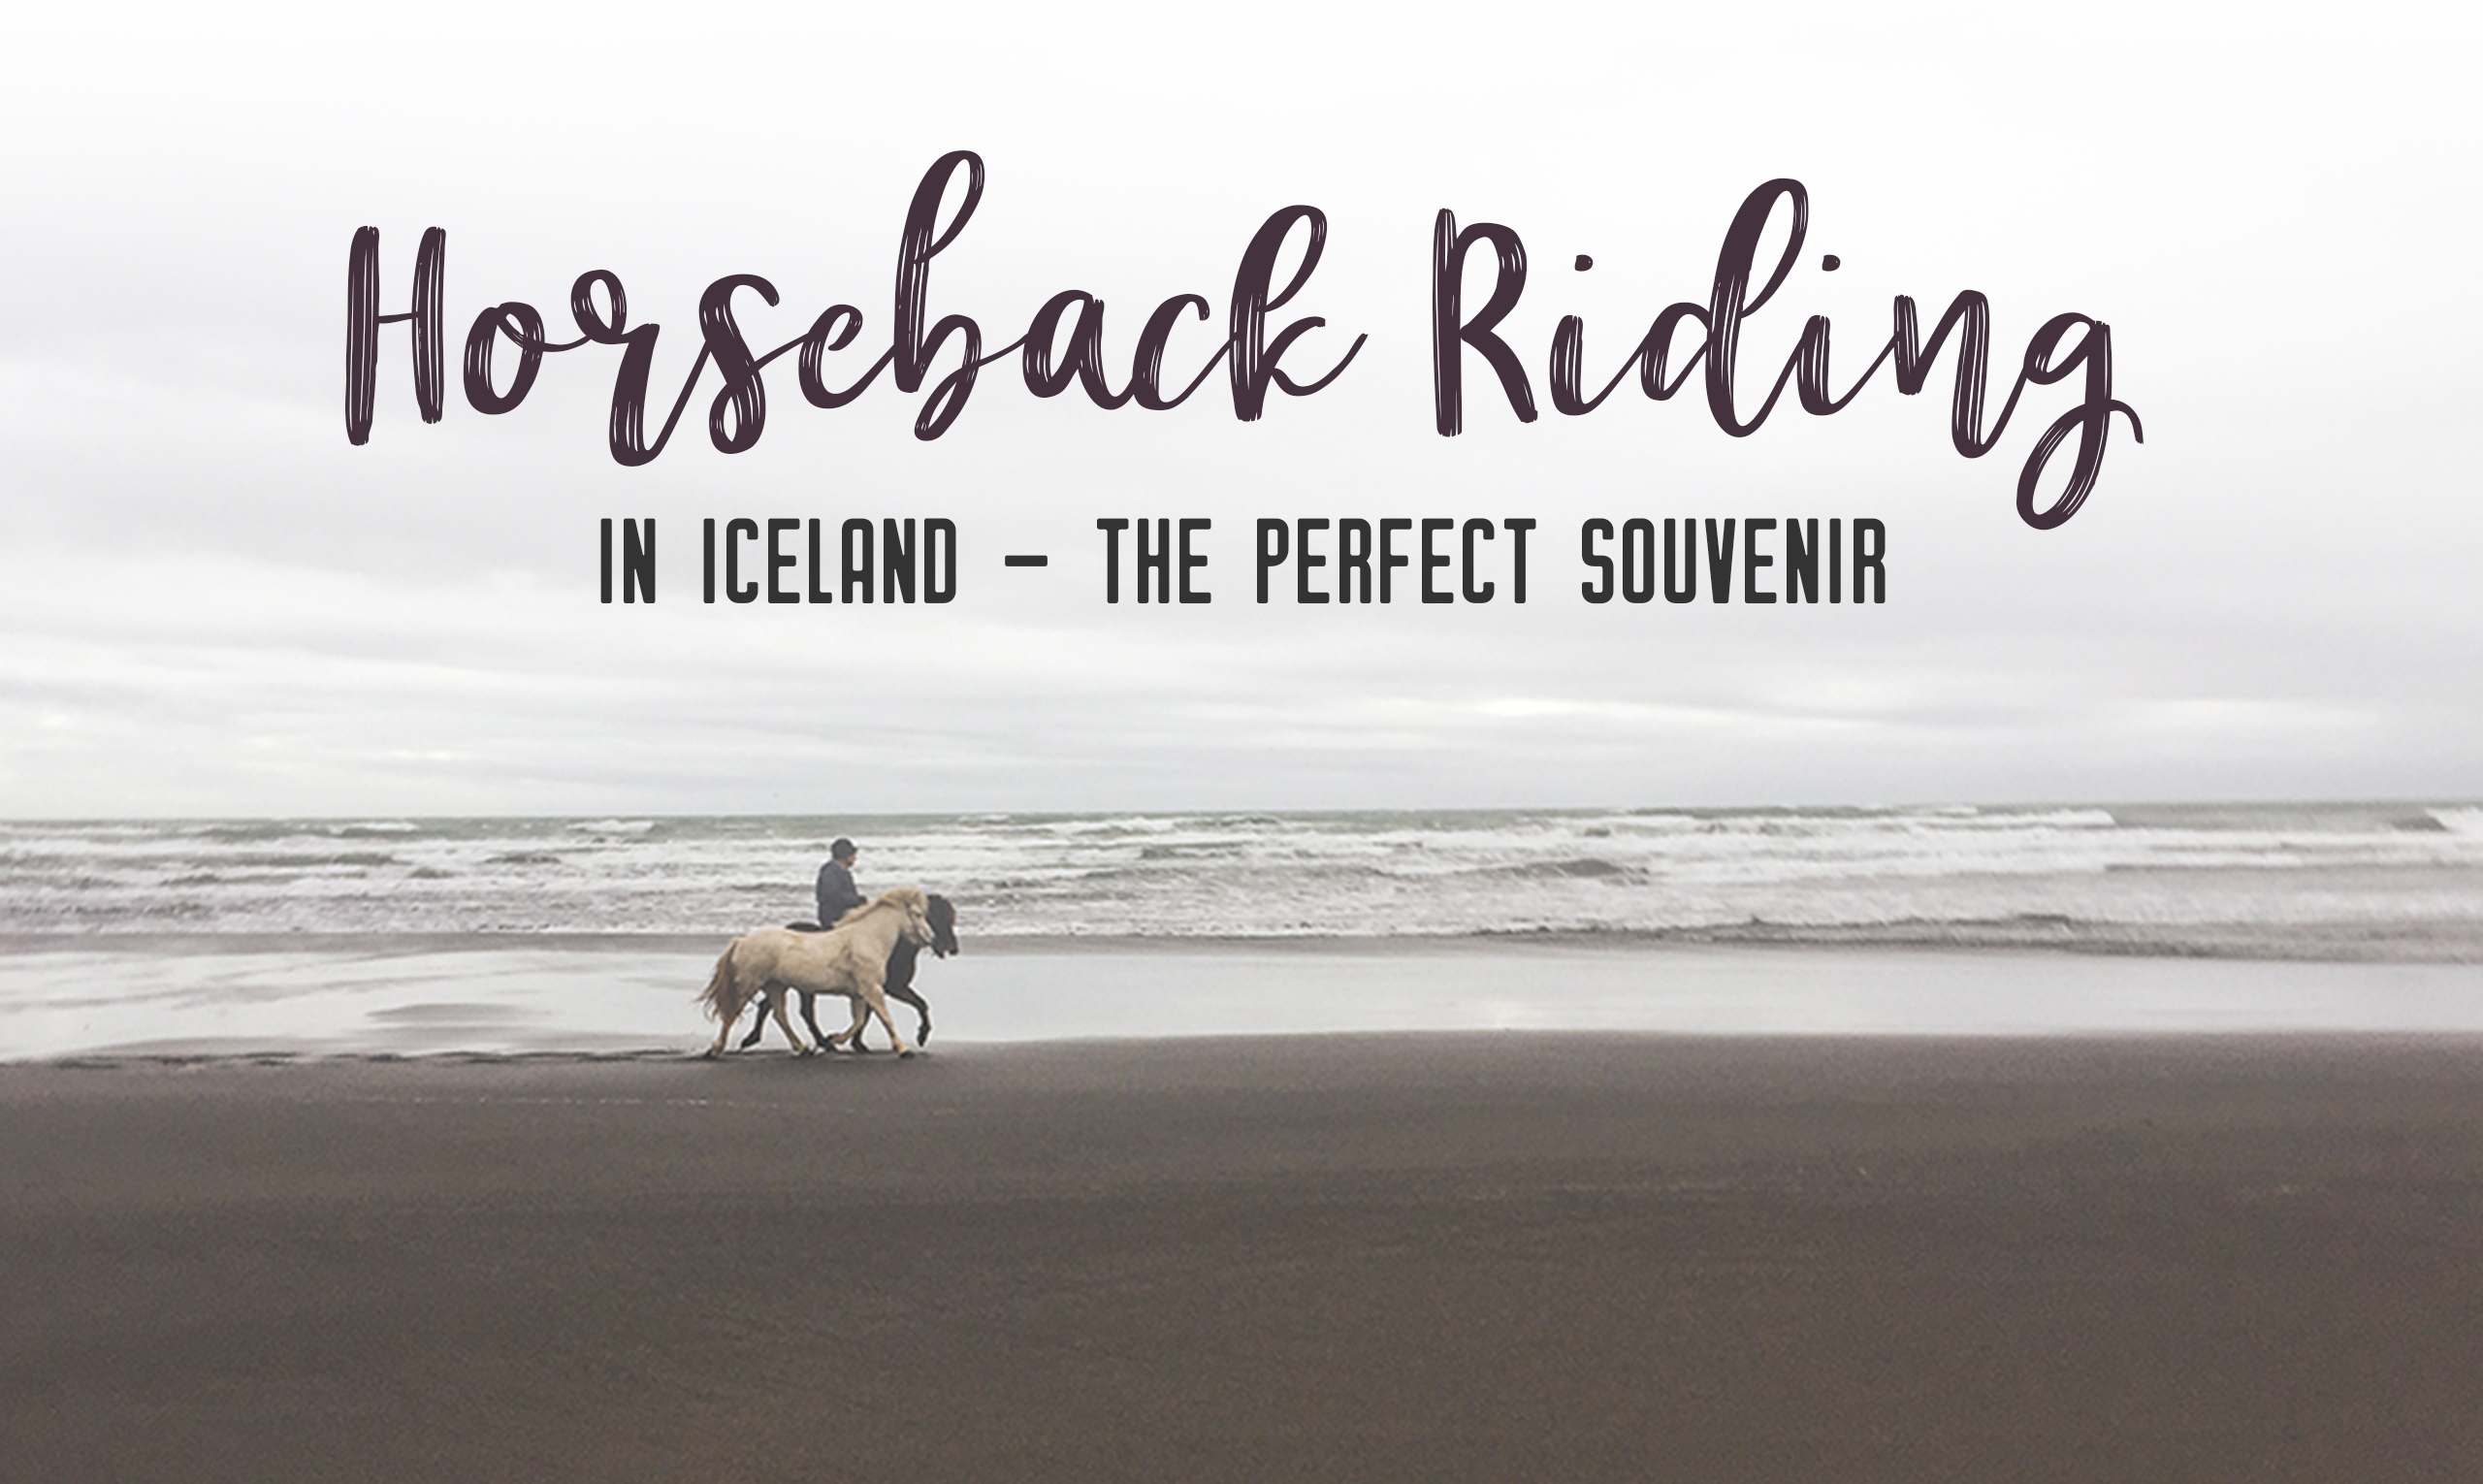 Horseback riding in Iceland is the perfect souvenir. Do your research on the place you'd like to book with. I am so happy I booked with Alhestar - Horseback Riding in Iceland, the perfect souvenir | My Wandering Voyage travel blog